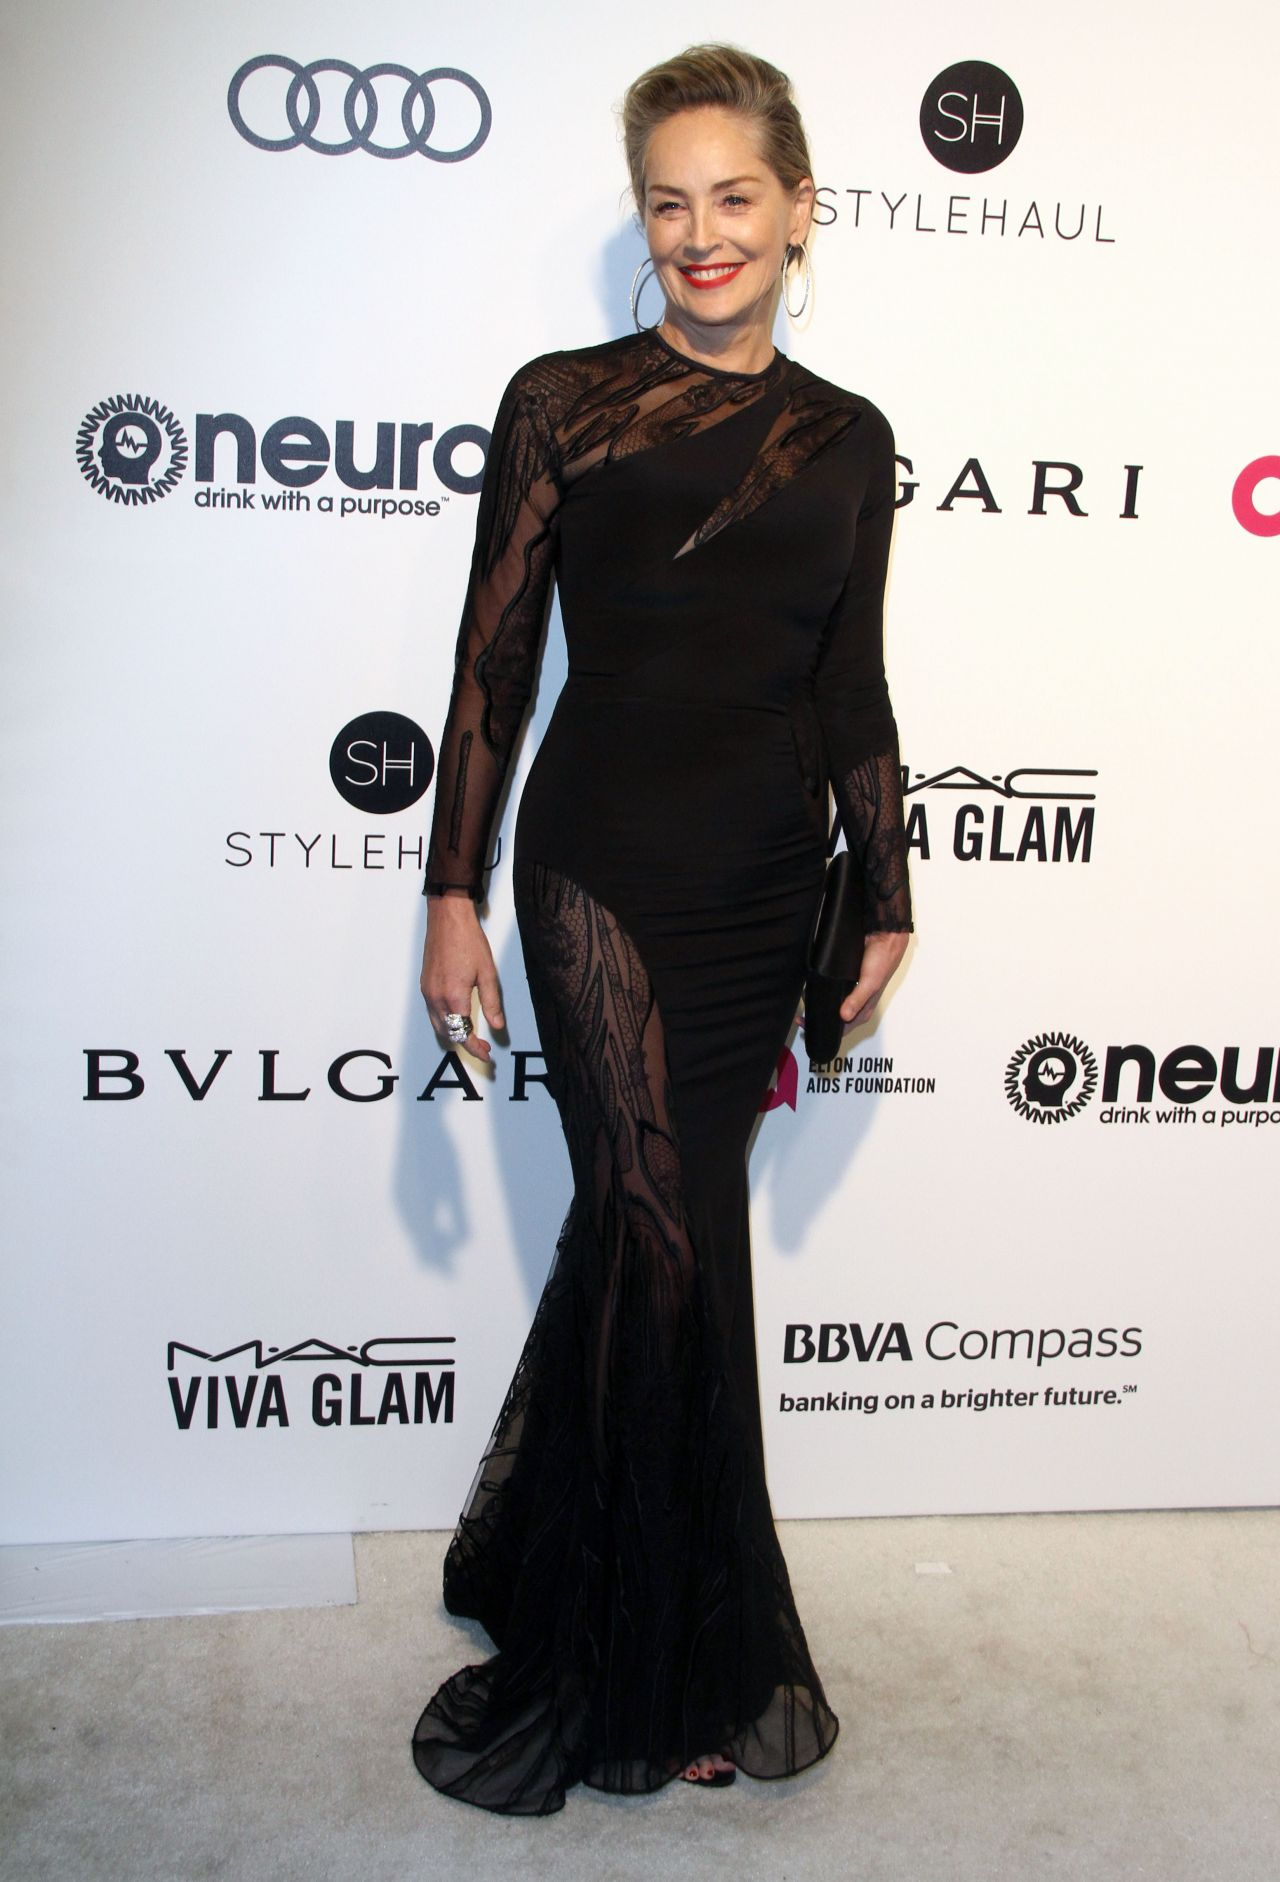 http://celebmafia.com/wp-content/uploads/2017/02/sharon-stone-elton-john-aids-foundation-s-academy-awards-2017-viewing-party-in-west-hollywood-6.jpg